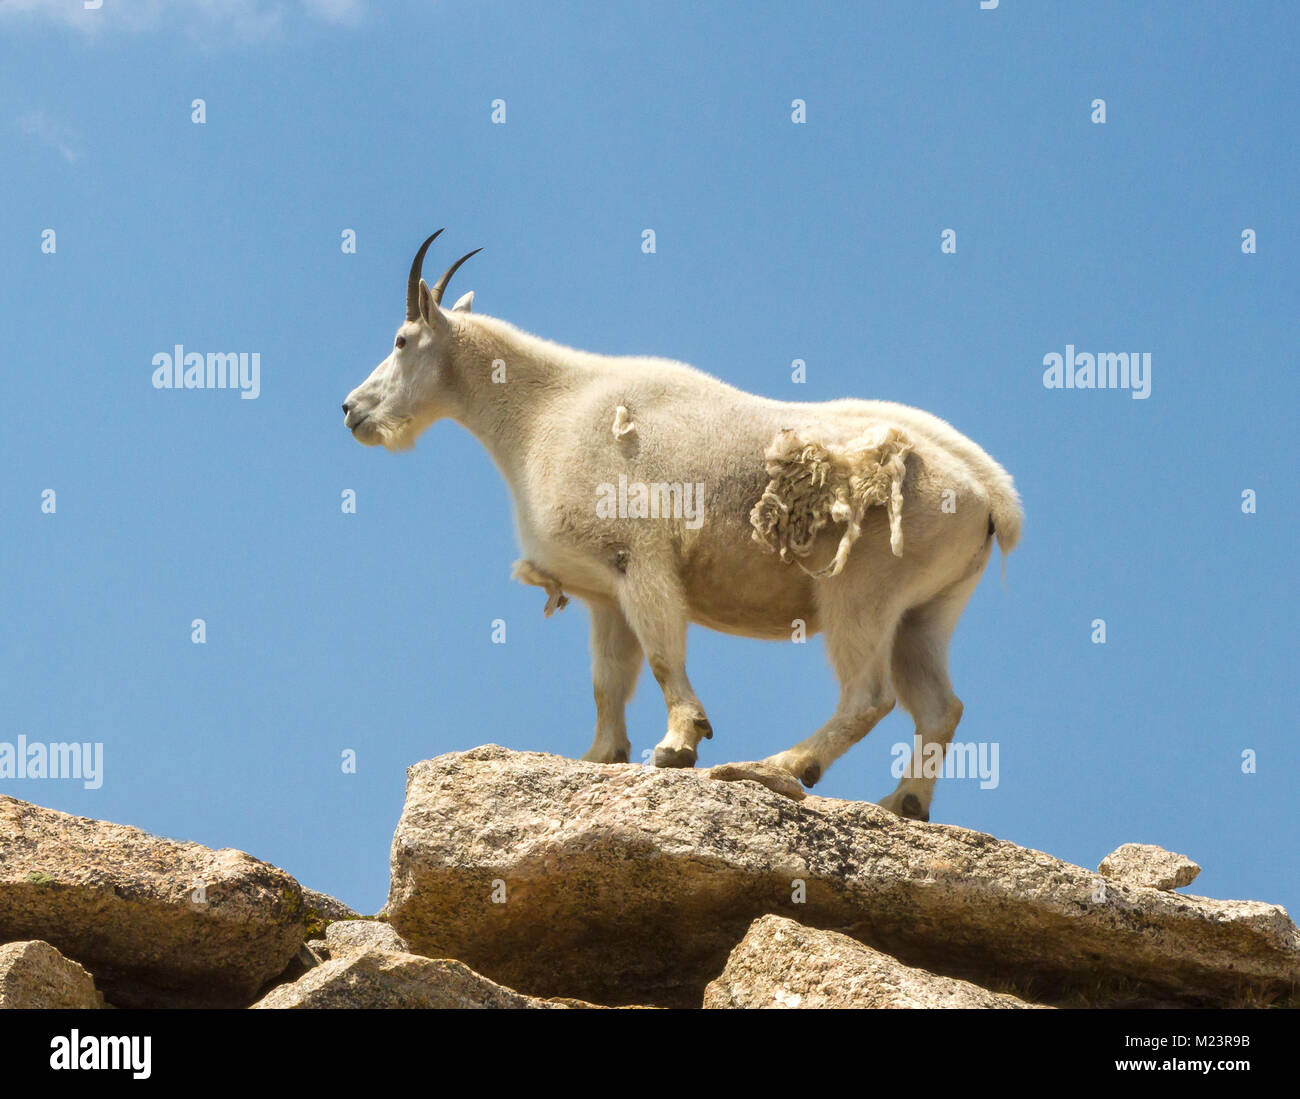 Mountain Goats (Oreamnos americanus) inhabit some of the most inhospitable regions in North America. They live in - Stock Image